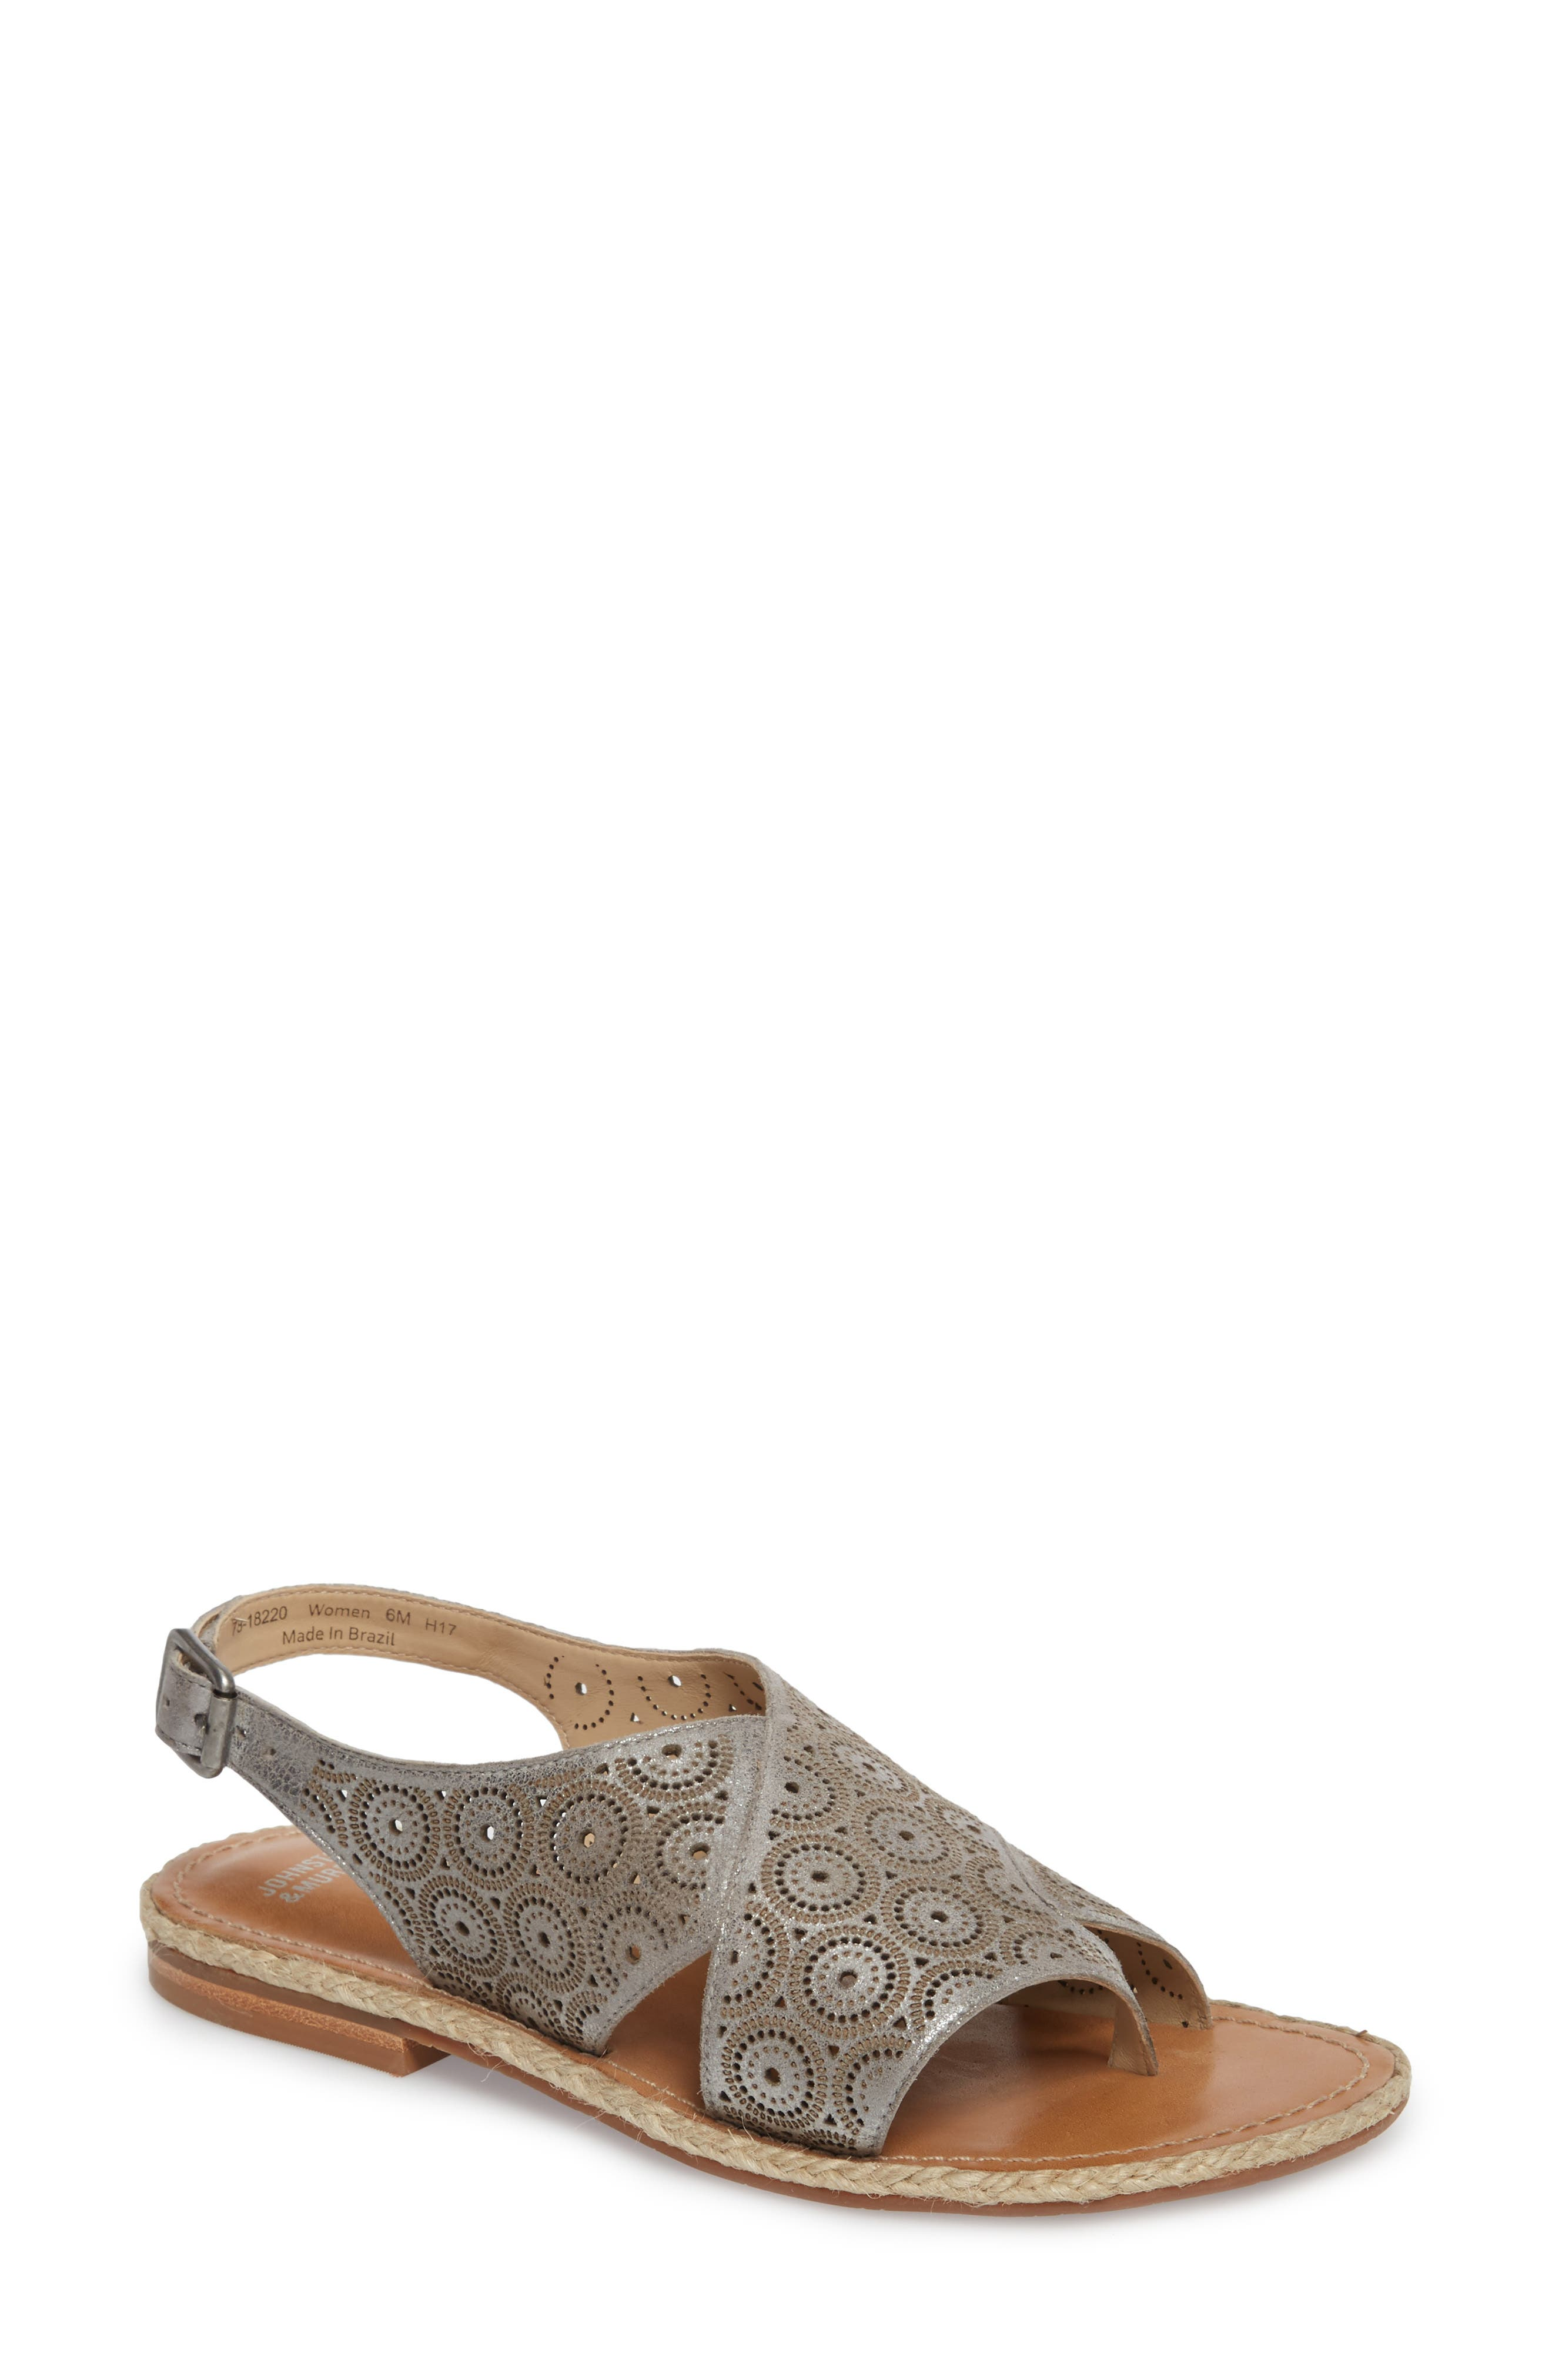 Willow Flat Sandal,                         Main,                         color, Pewter Leather